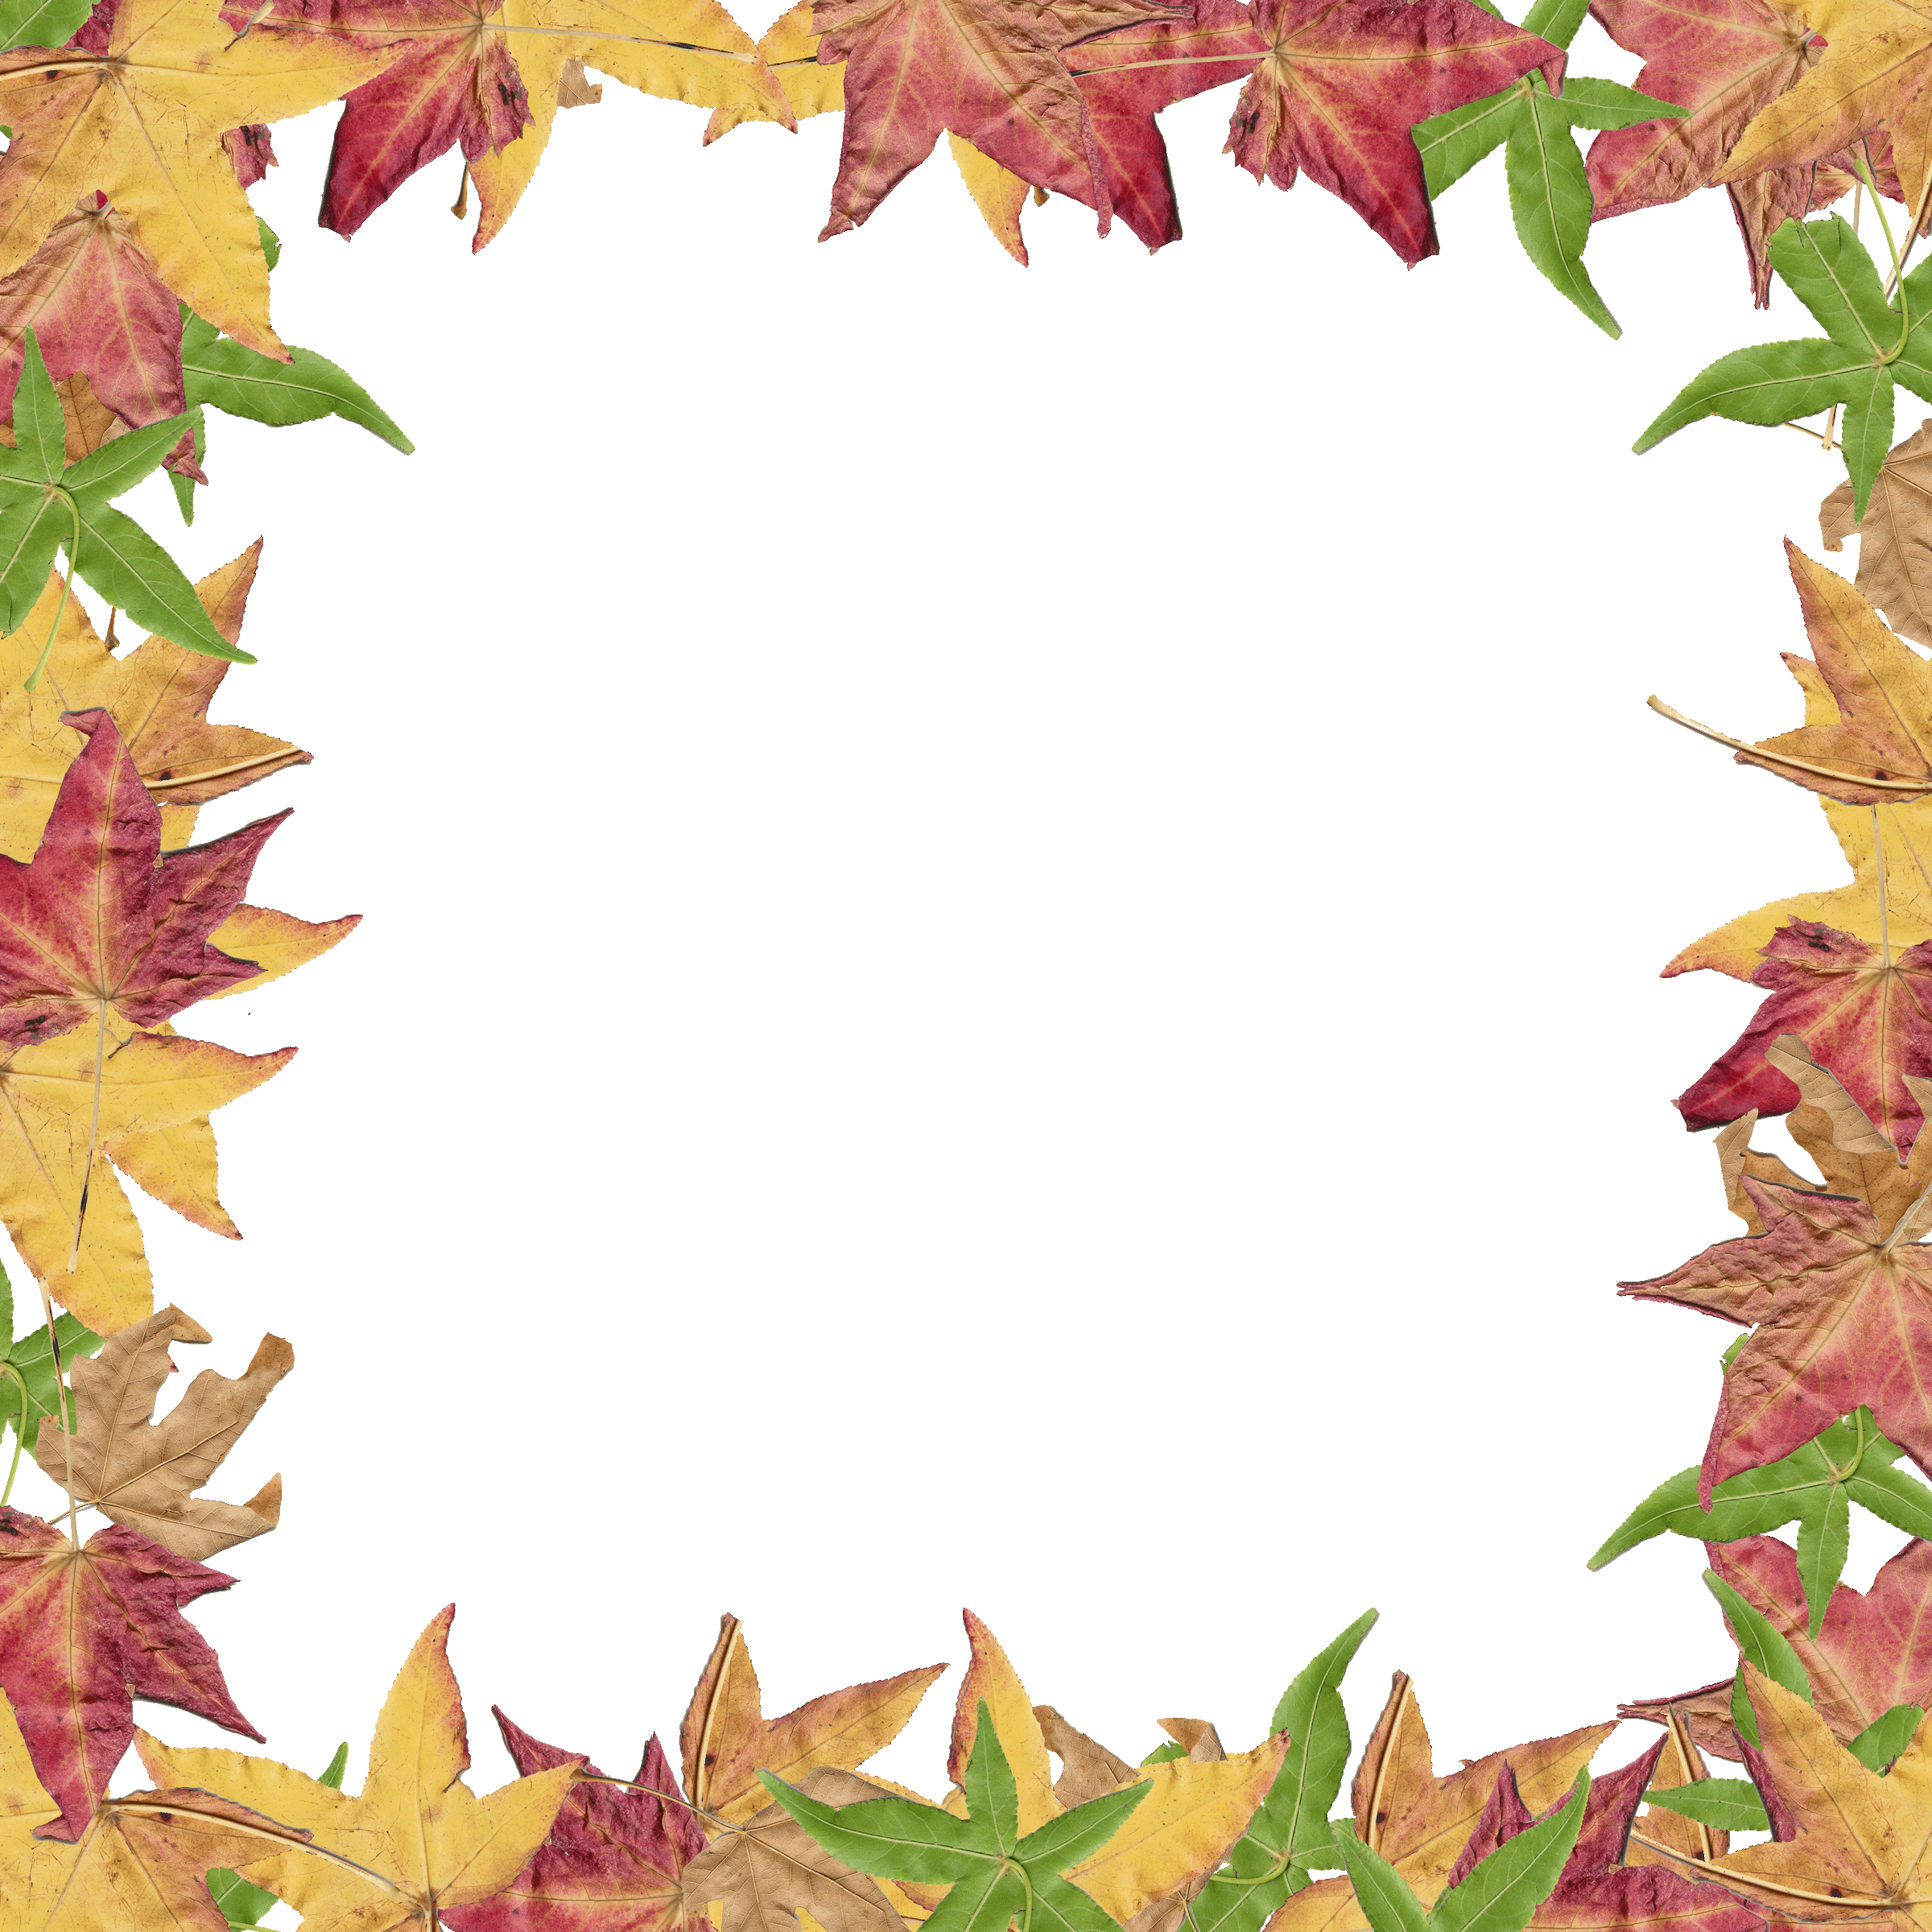 Autumn leaves border png. Free clipart fall at